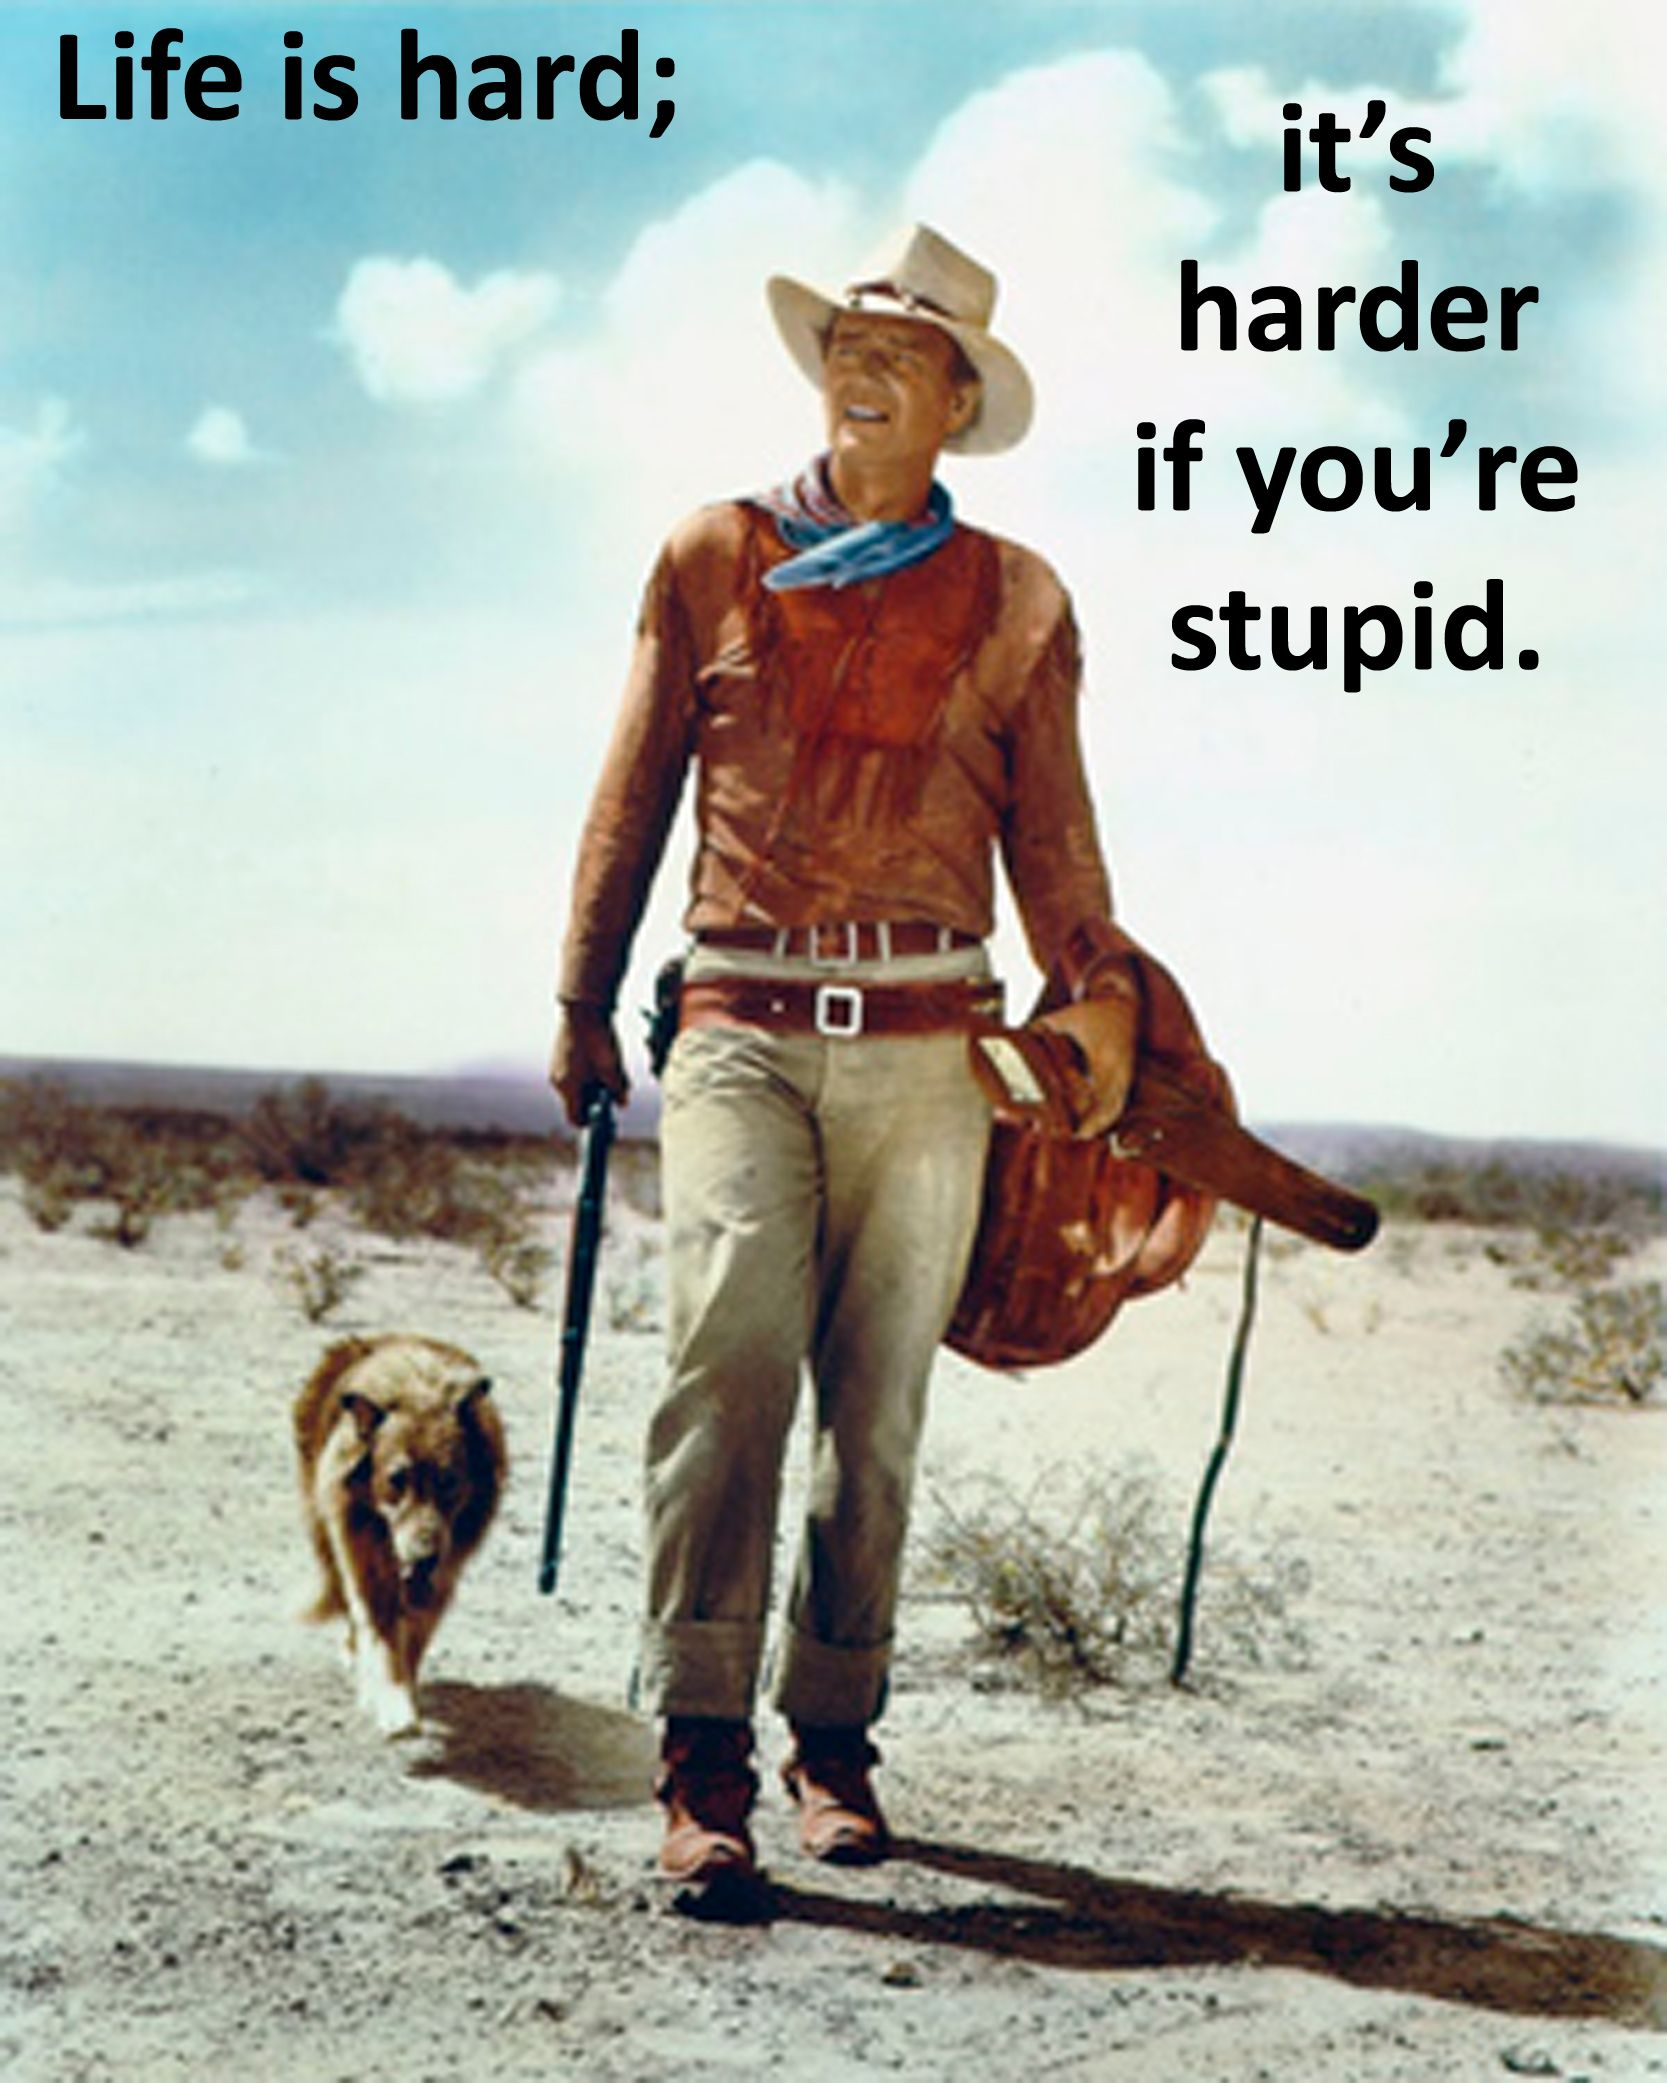 John Wayne Quote Life Is Hard John Wayne Quote  Life Is Hard.harder If You're Stupid